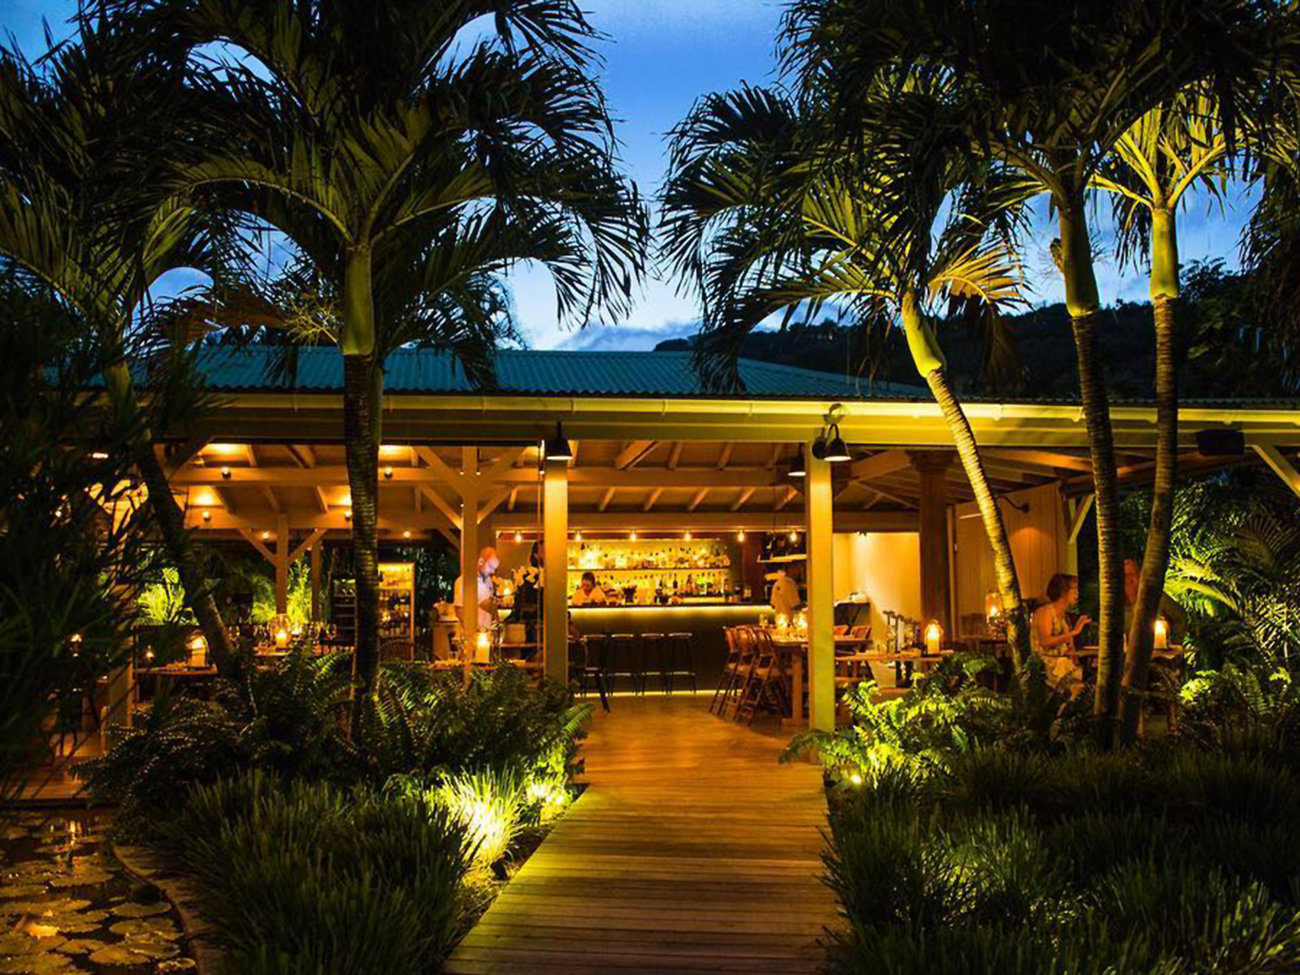 Tamarin St. Barth Restaurant in St. Barts